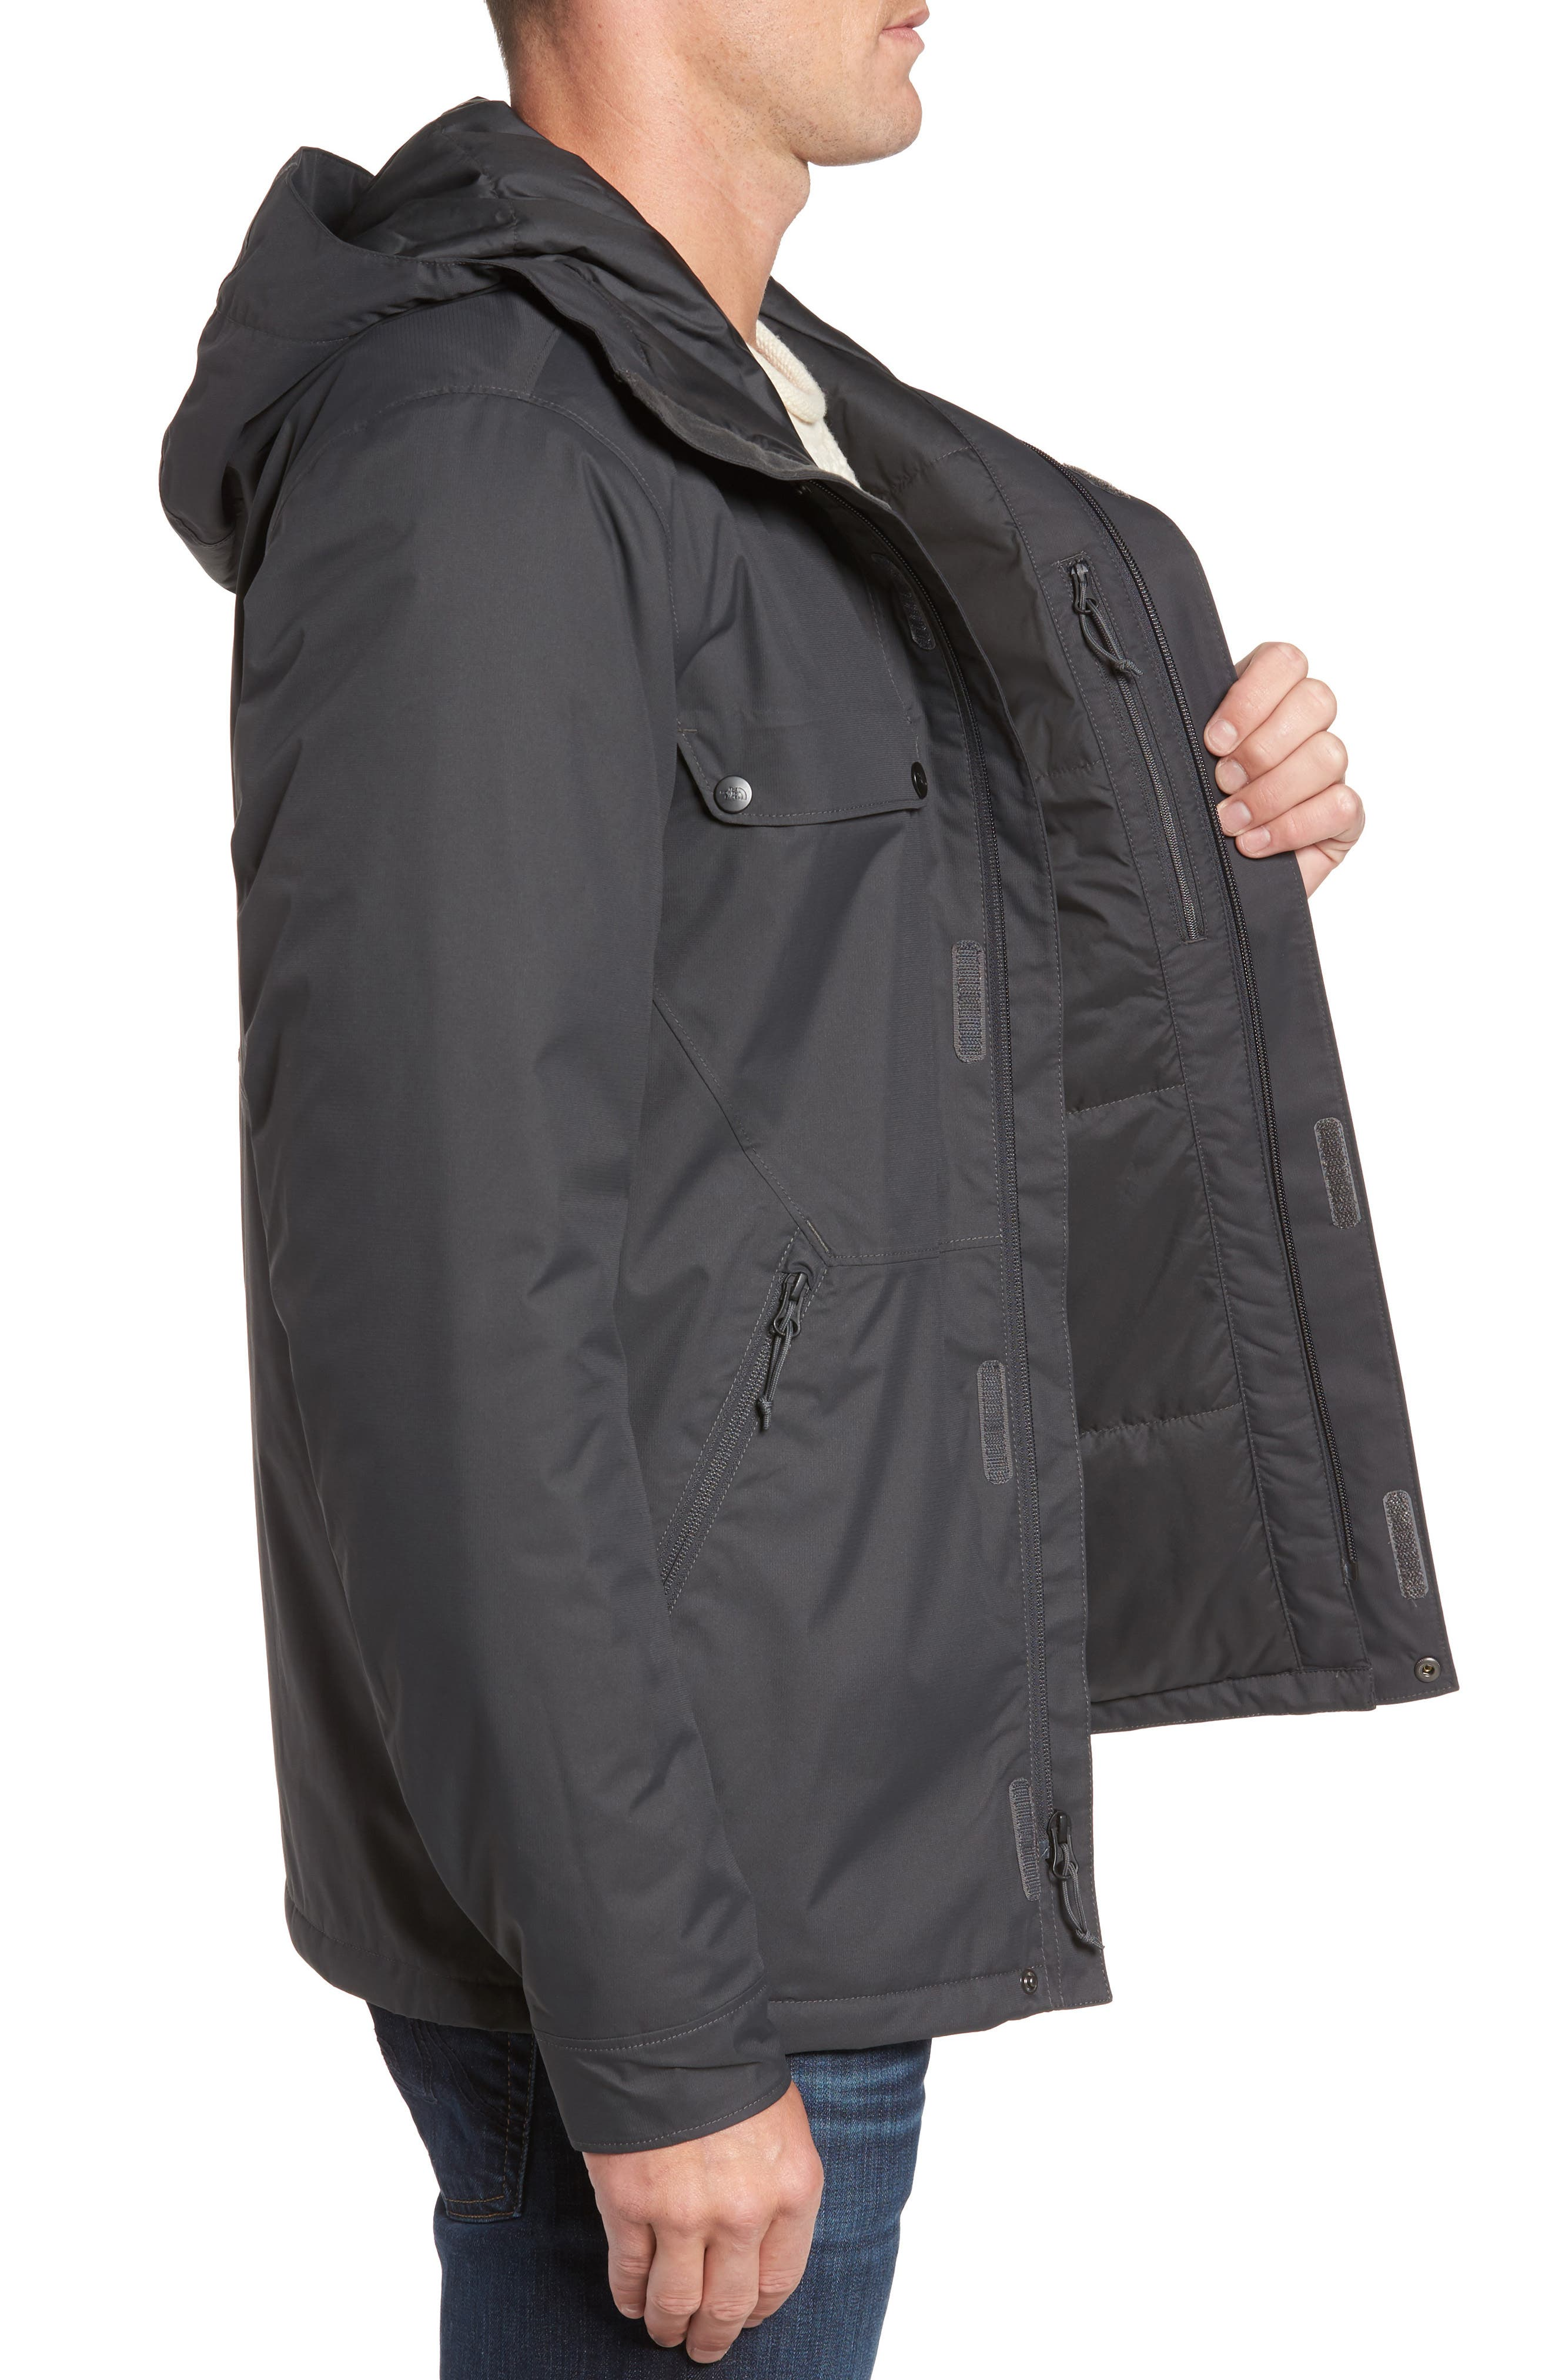 Jenison Insulated Waterproof Jacket,                             Alternate thumbnail 6, color,